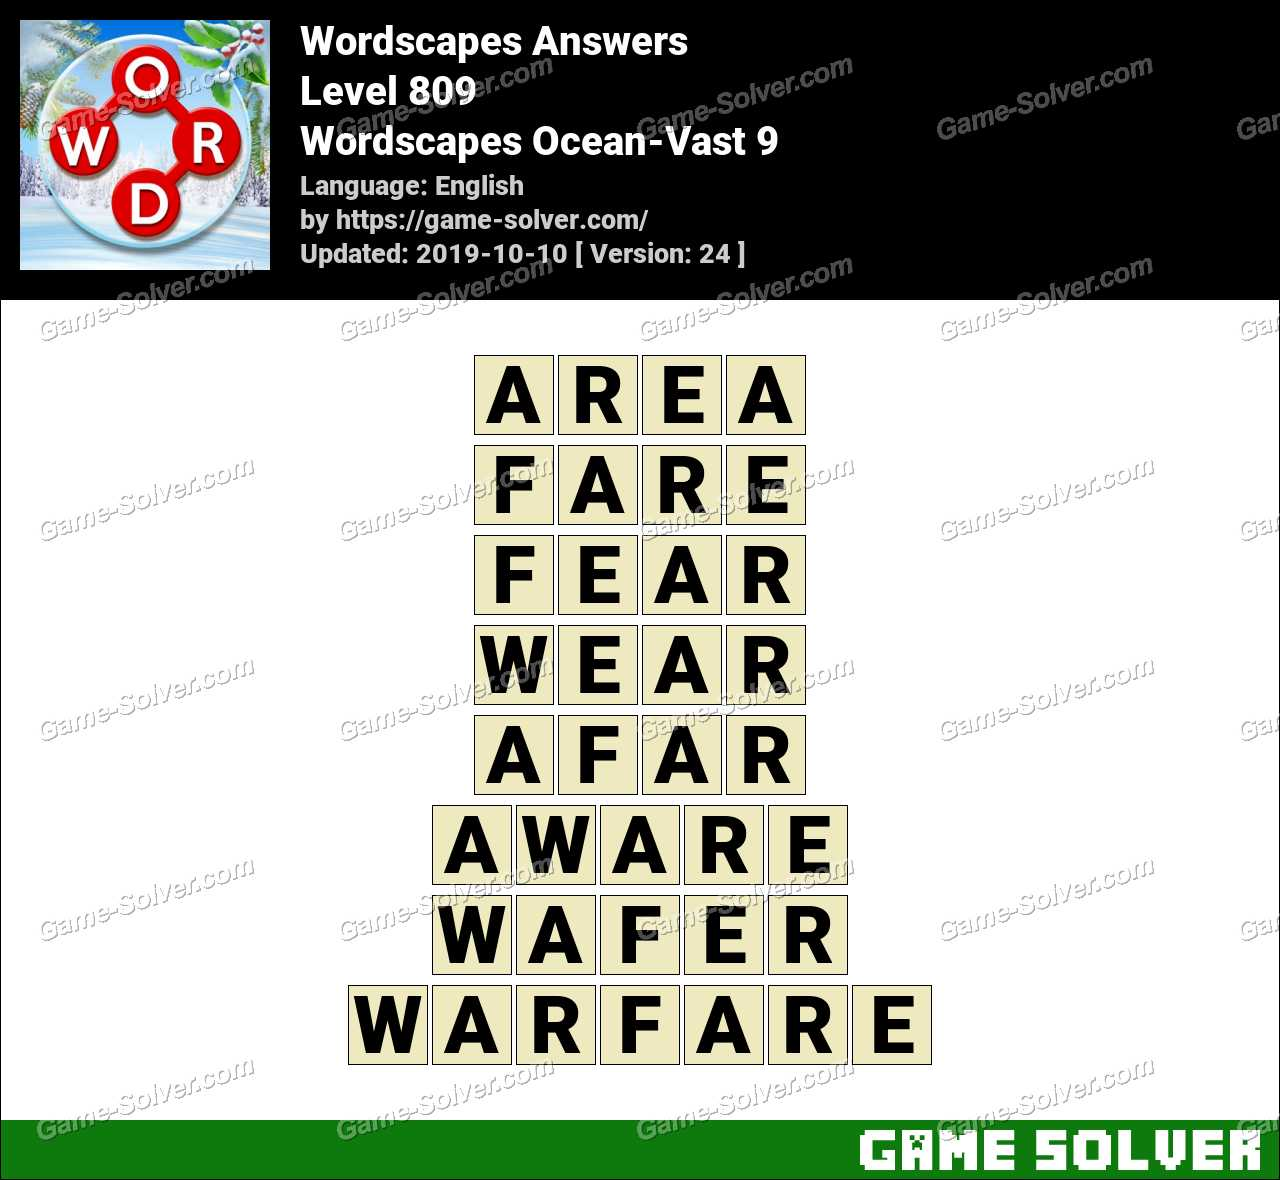 Wordscapes Ocean-Vast 9 Answers